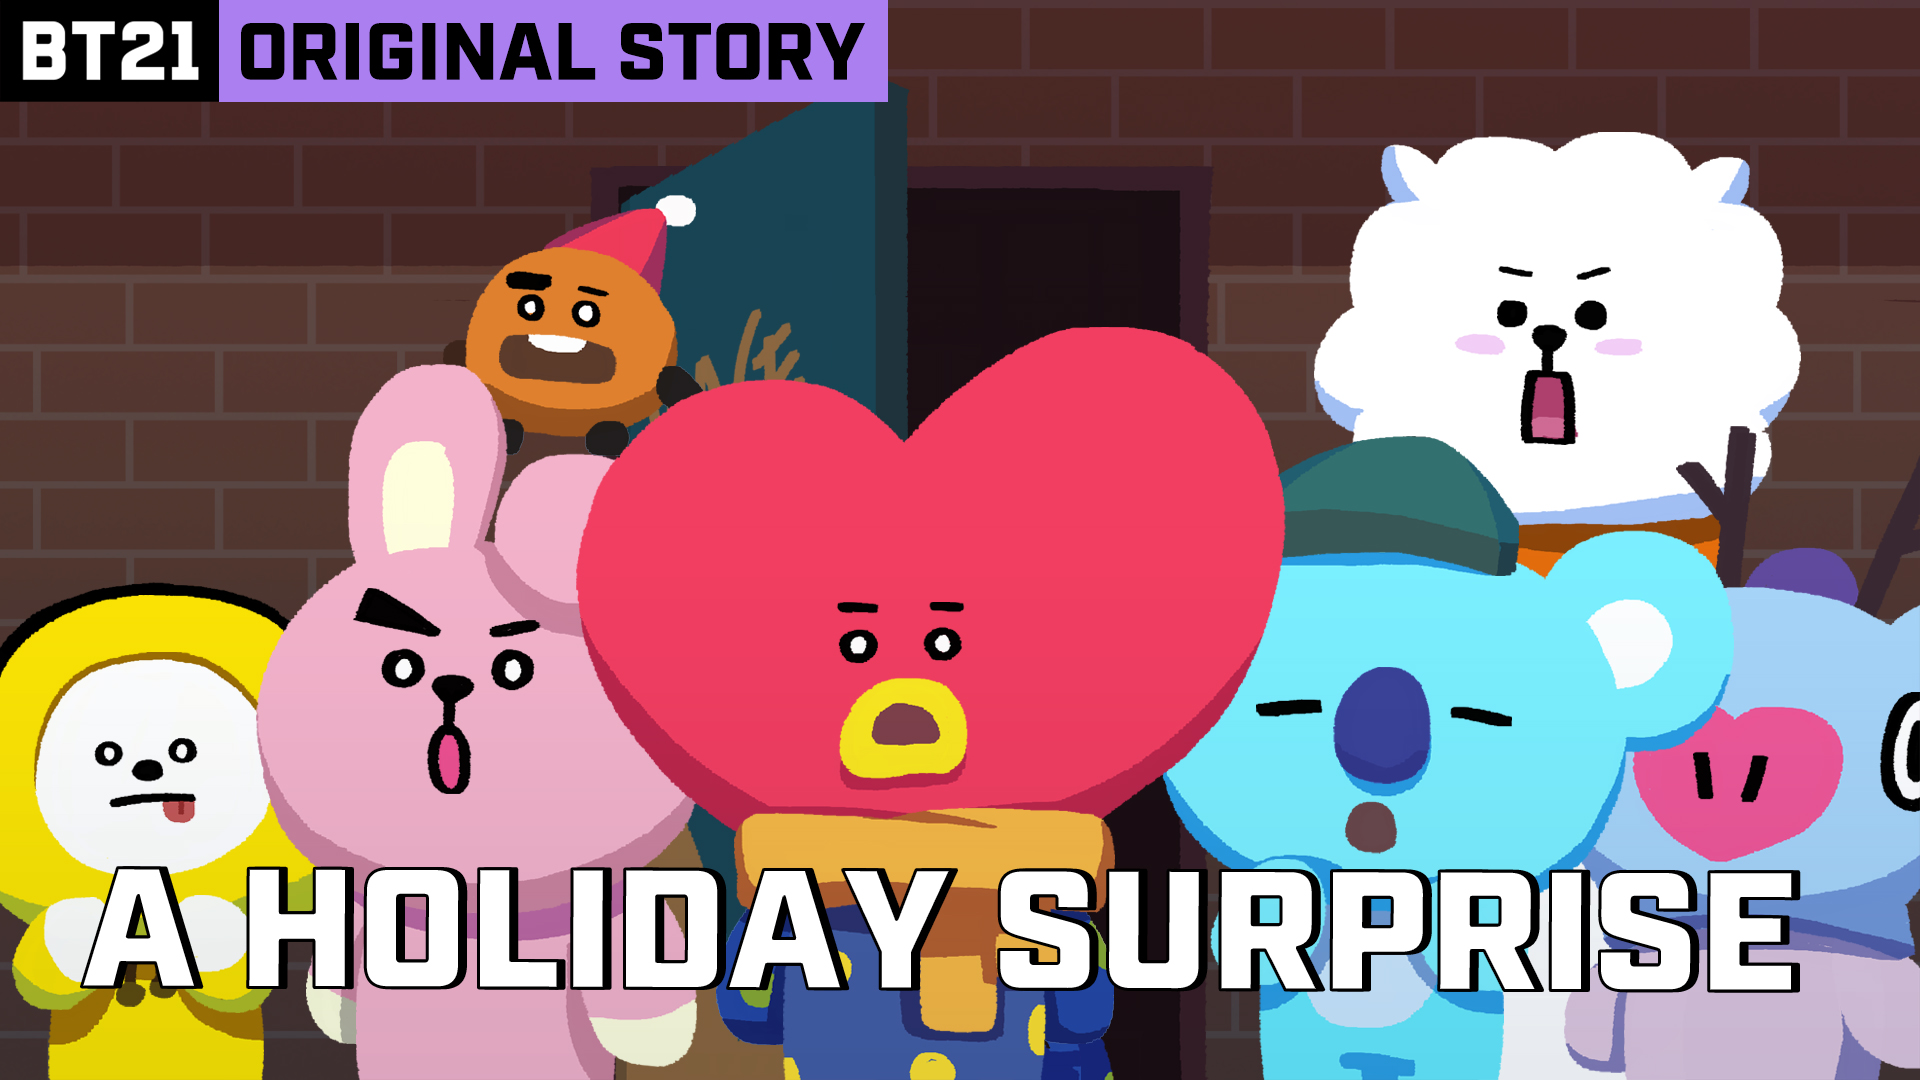 BT21 ORIGINAL STORY EP.04 - THE UNINVITED GUEST